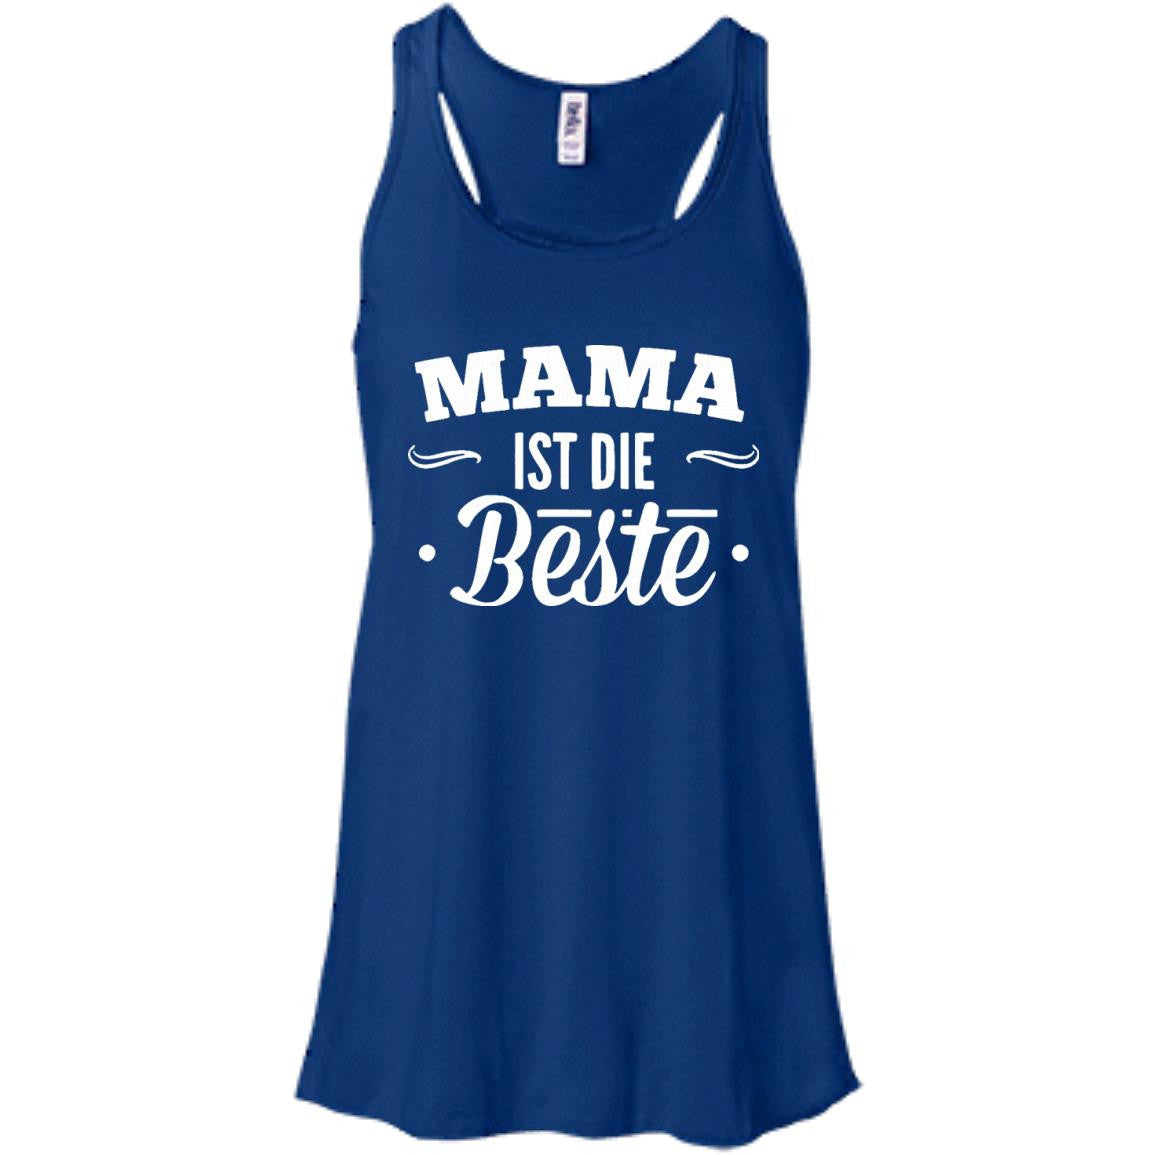 mother 39 s day t shirts mama ist die beste hoodies. Black Bedroom Furniture Sets. Home Design Ideas